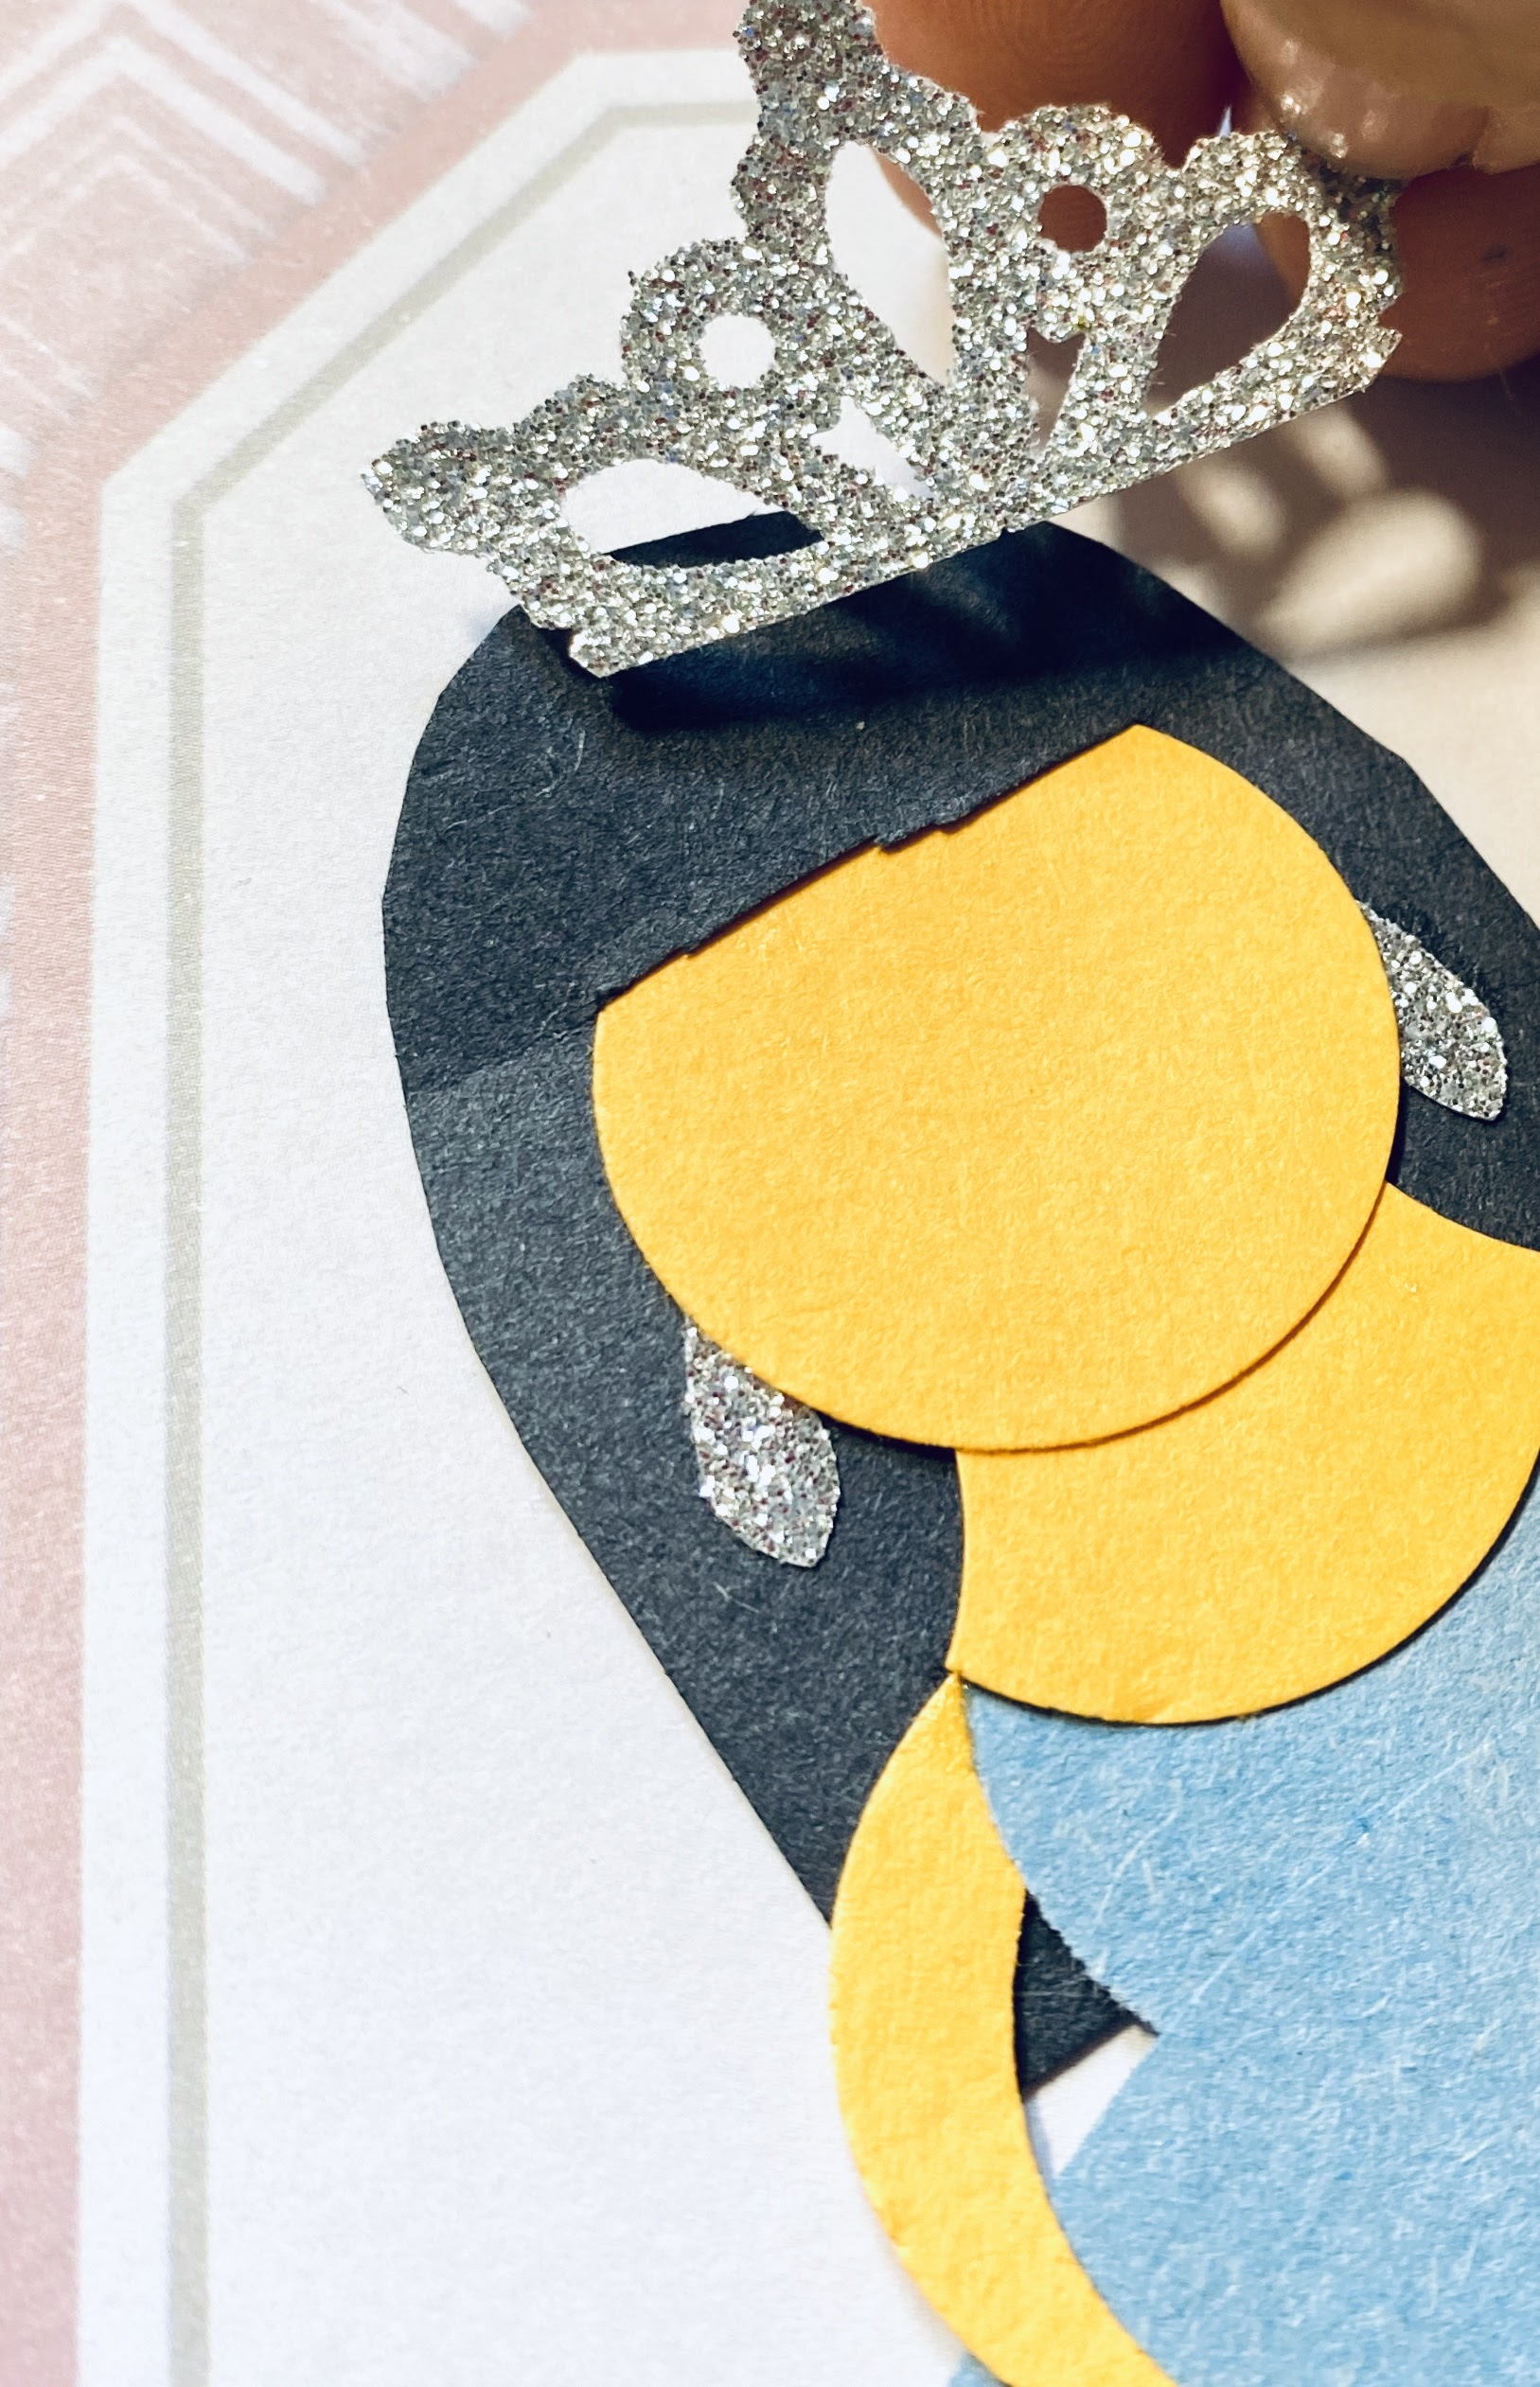 Here we are adding a glittery silver crown to the paper princess.  She also has her glittery earrings on.